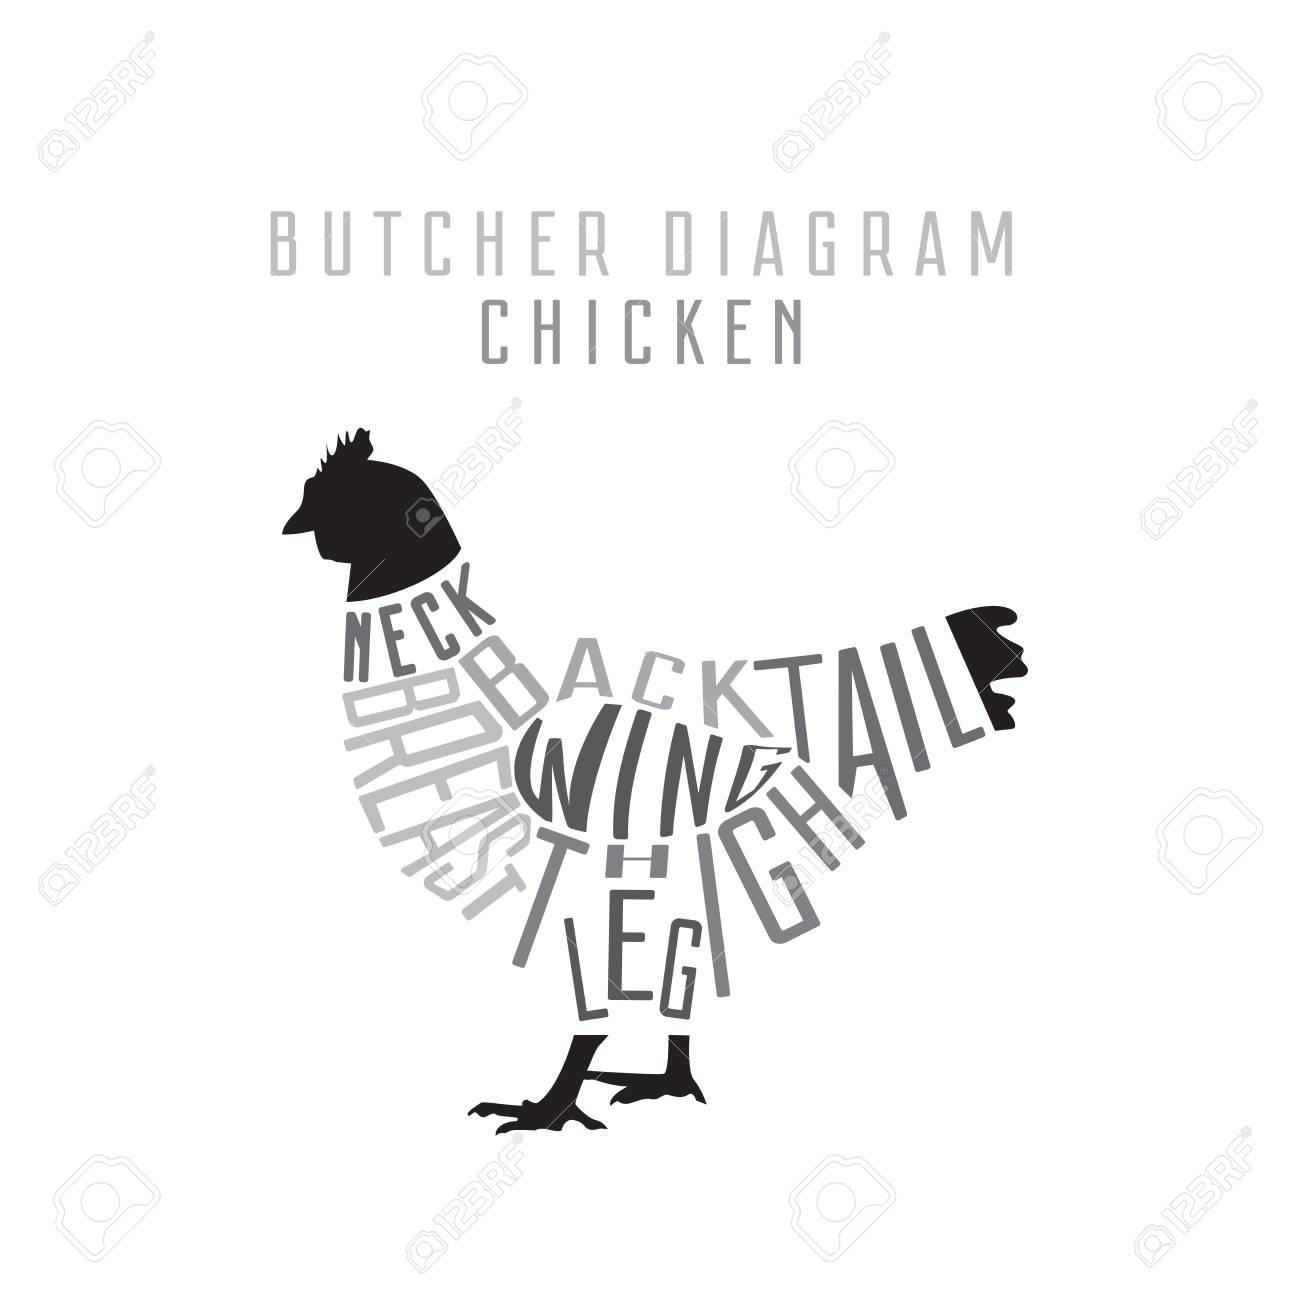 Chicken Butcher Diagram Cut Of Set Typographic Vintage Cuts Stock Vector Photo 95163750